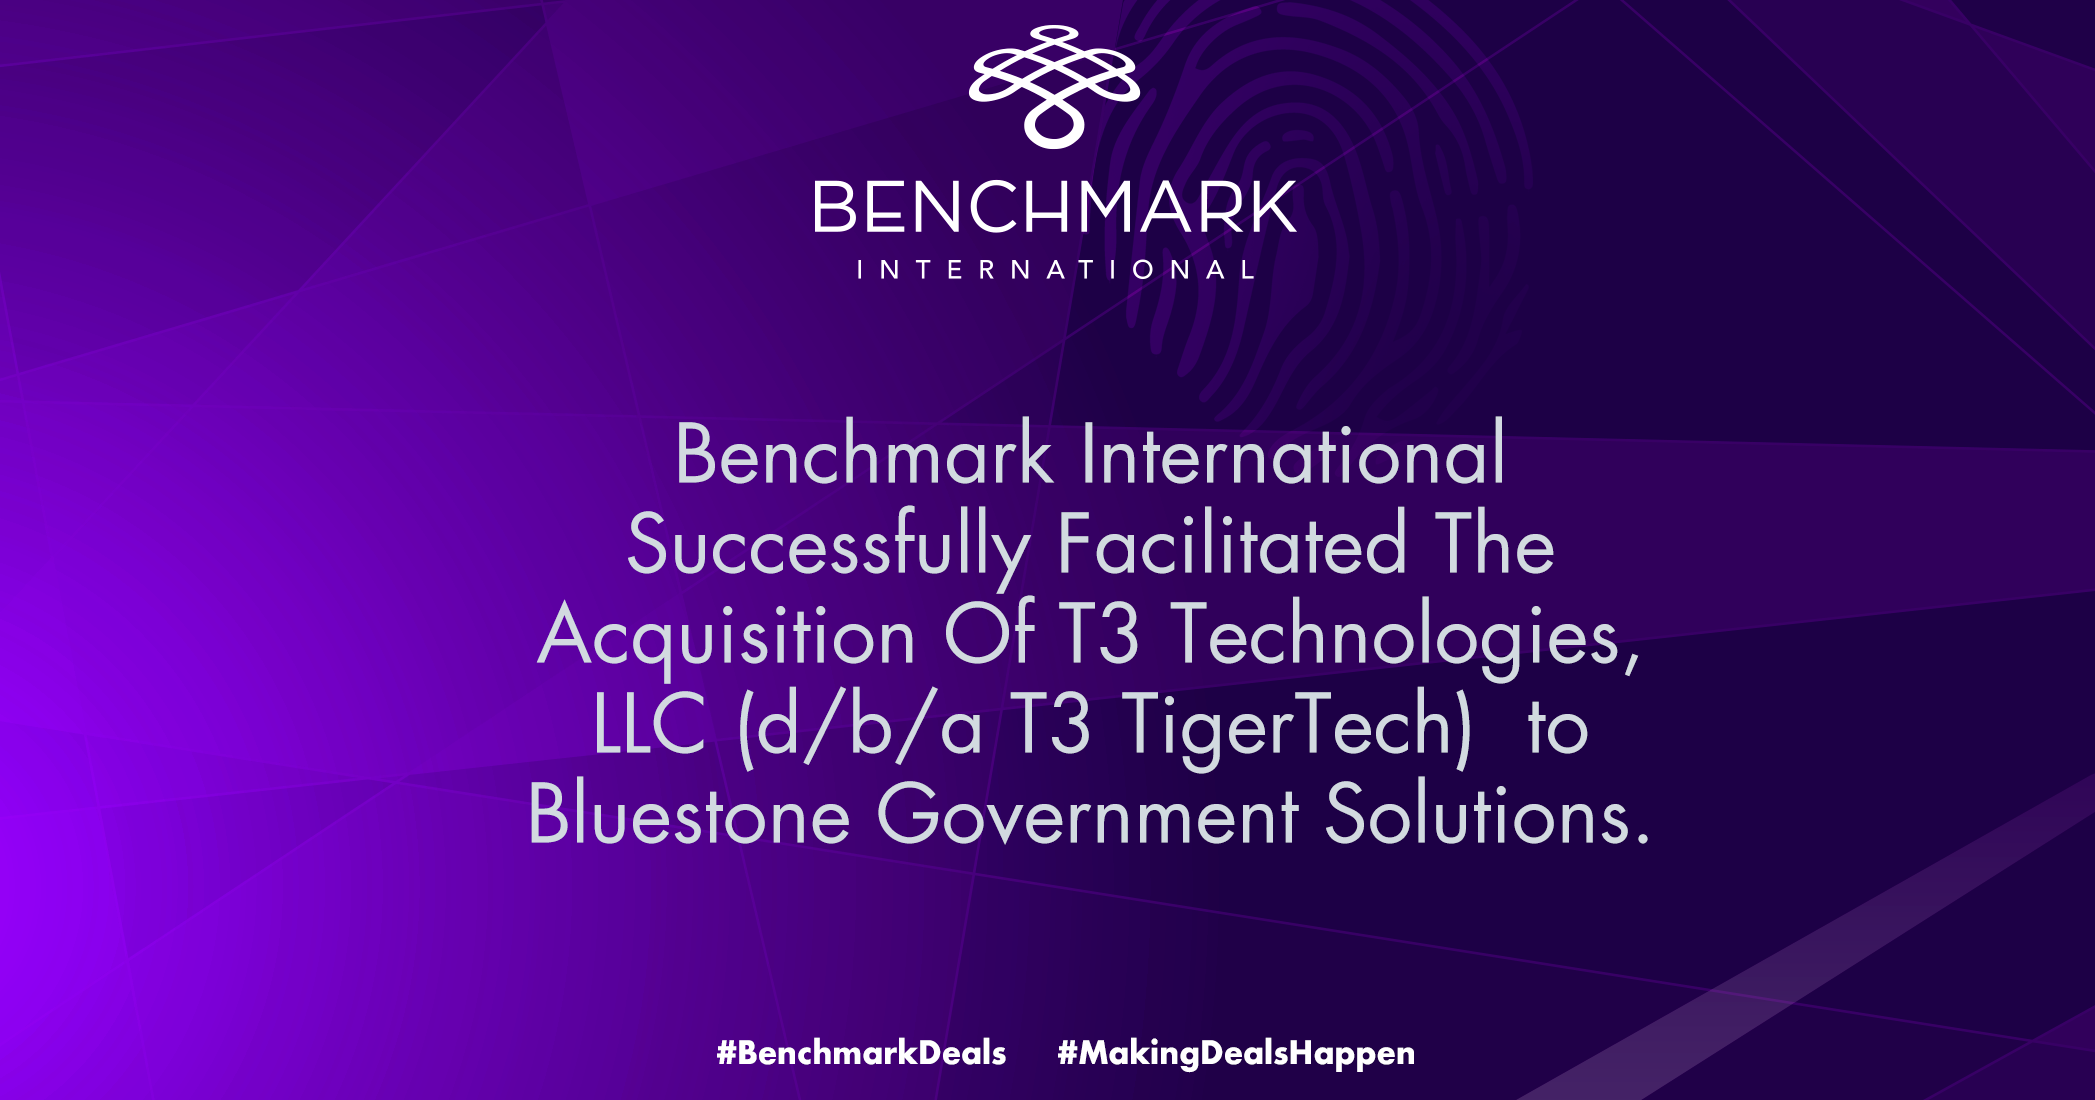 Benchmark International  Successfully Facilitated The Acquisition Of T3 Technologies, LLC (d/b/a T3 TigerTech) To Bluestone Government Solutions.